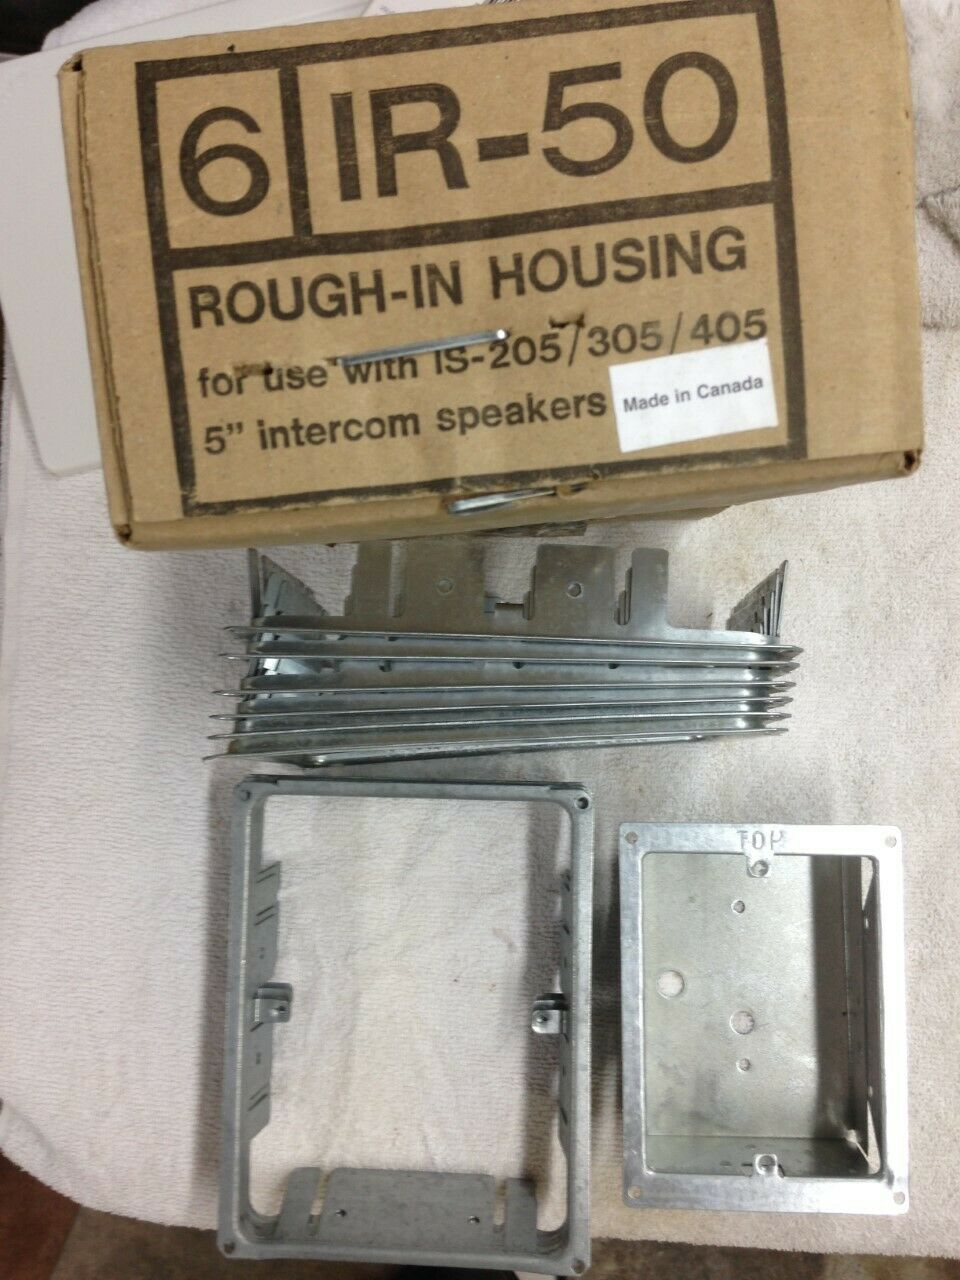 9 NUTONE IR-50 Rough-In Housings and 1 Nutone IR-6 Rough-in box for door station